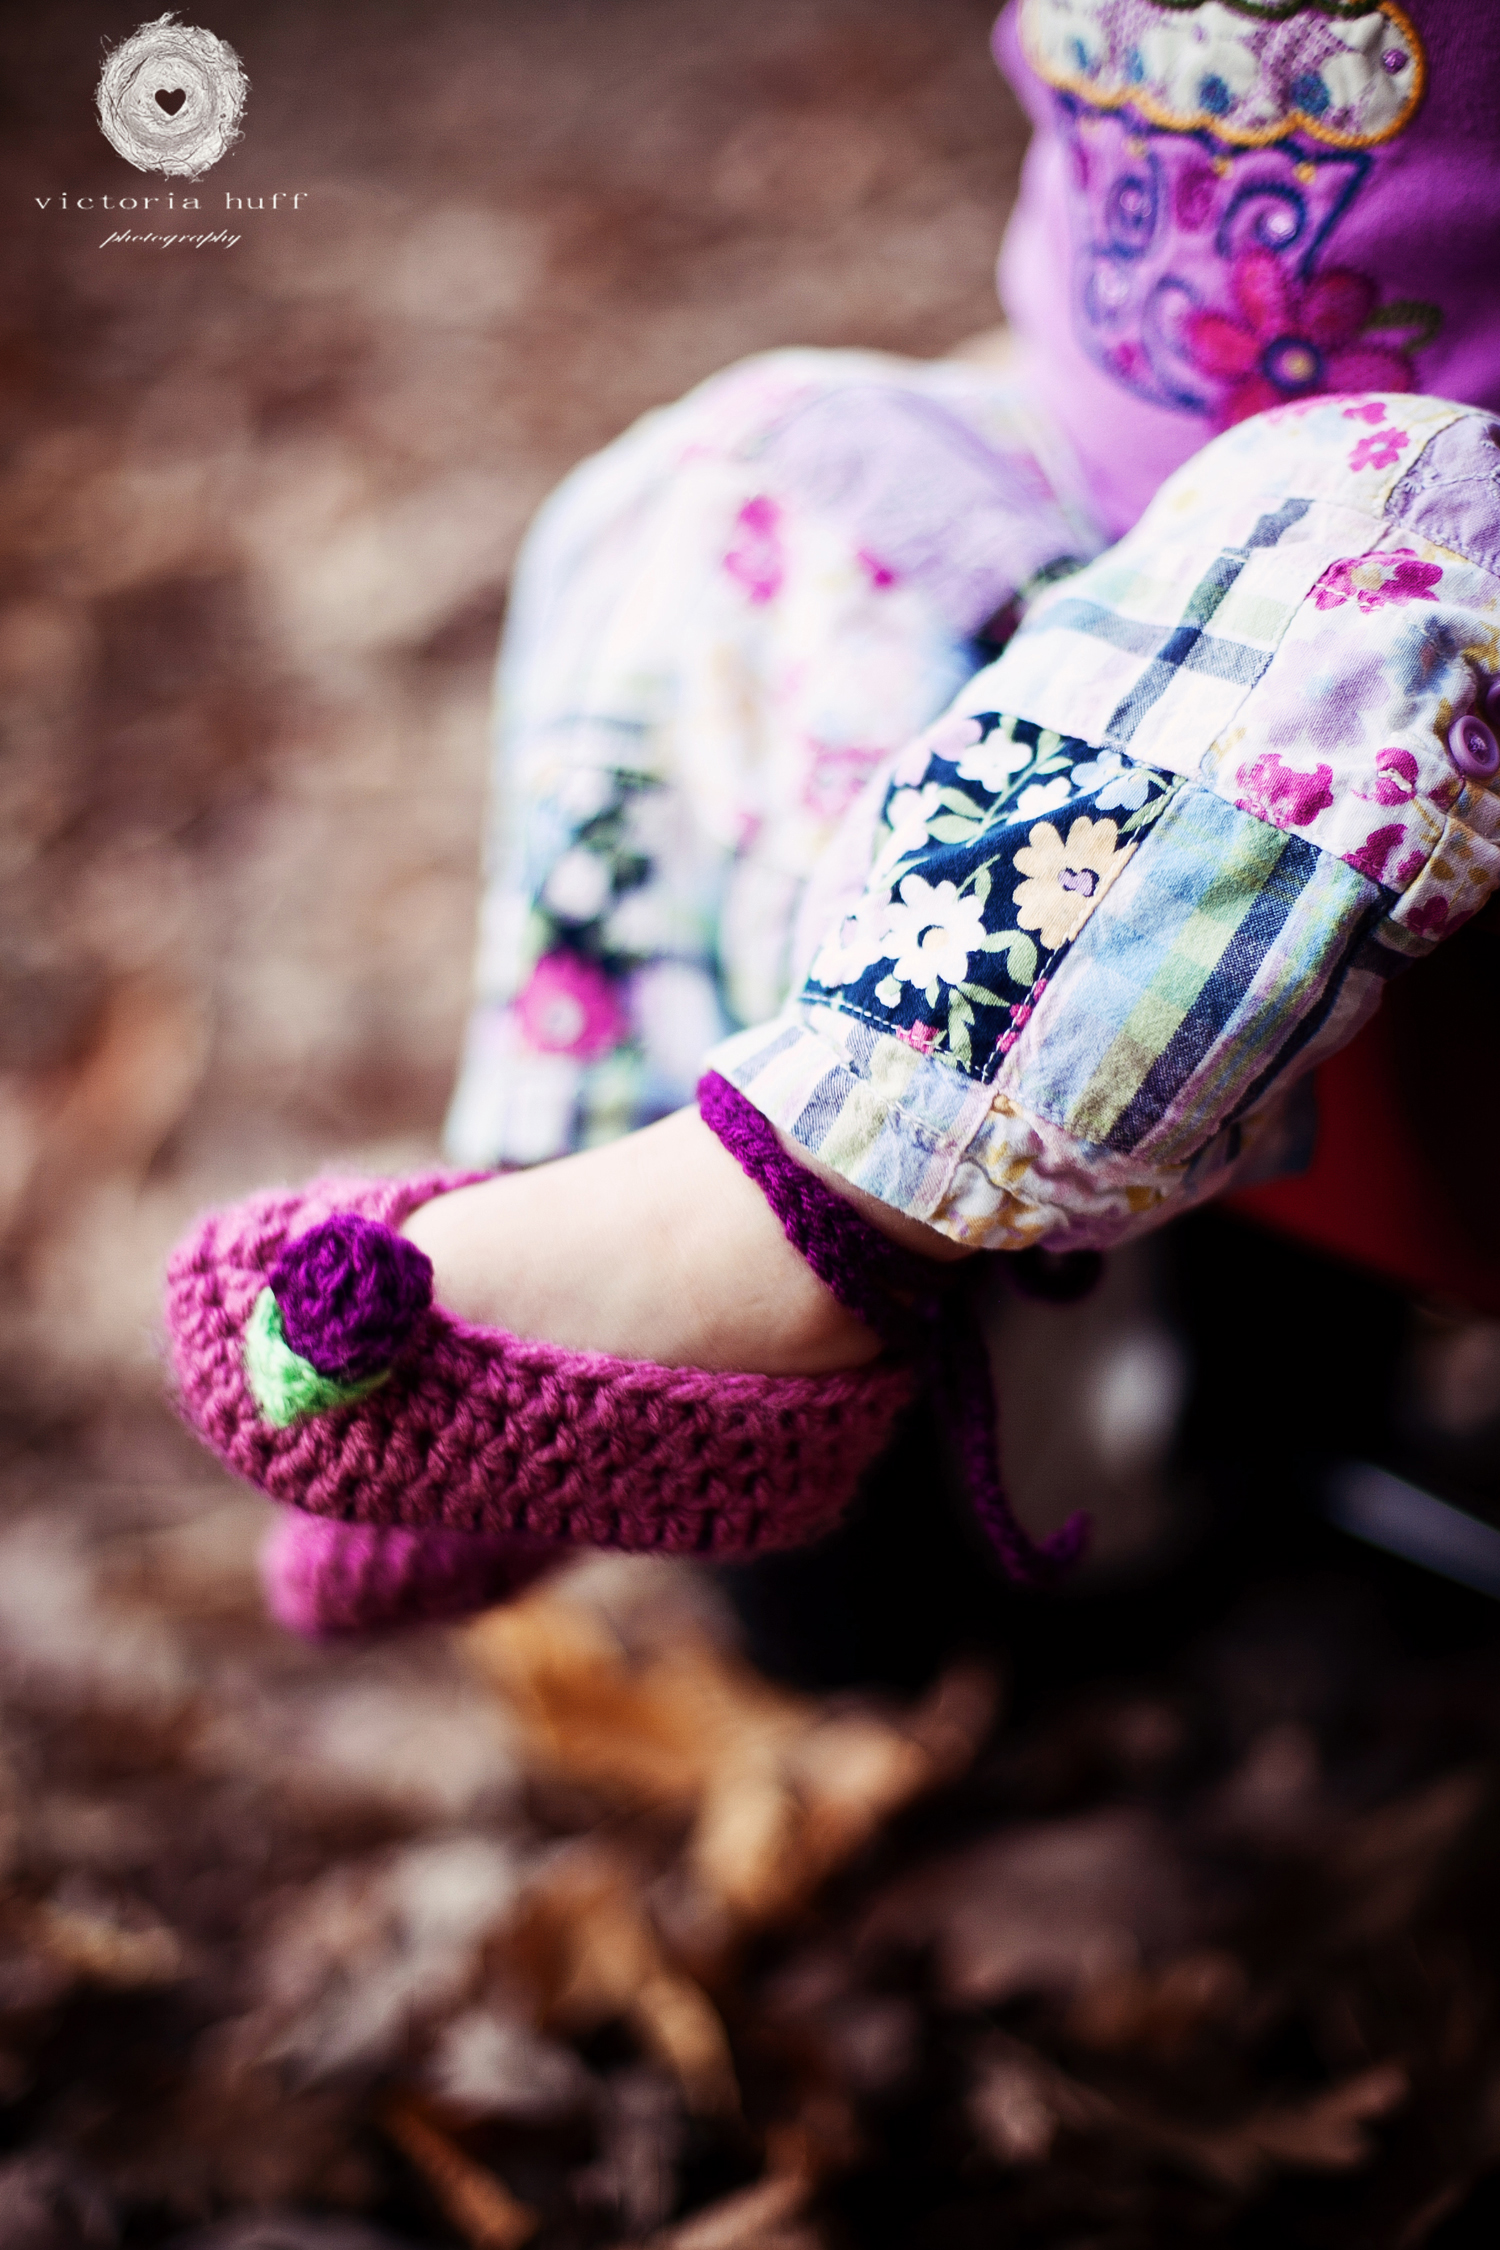 Callie-baby-toddler-shoes-purple-flowers-north-georgia-mountains-suches-photography-2.jpg